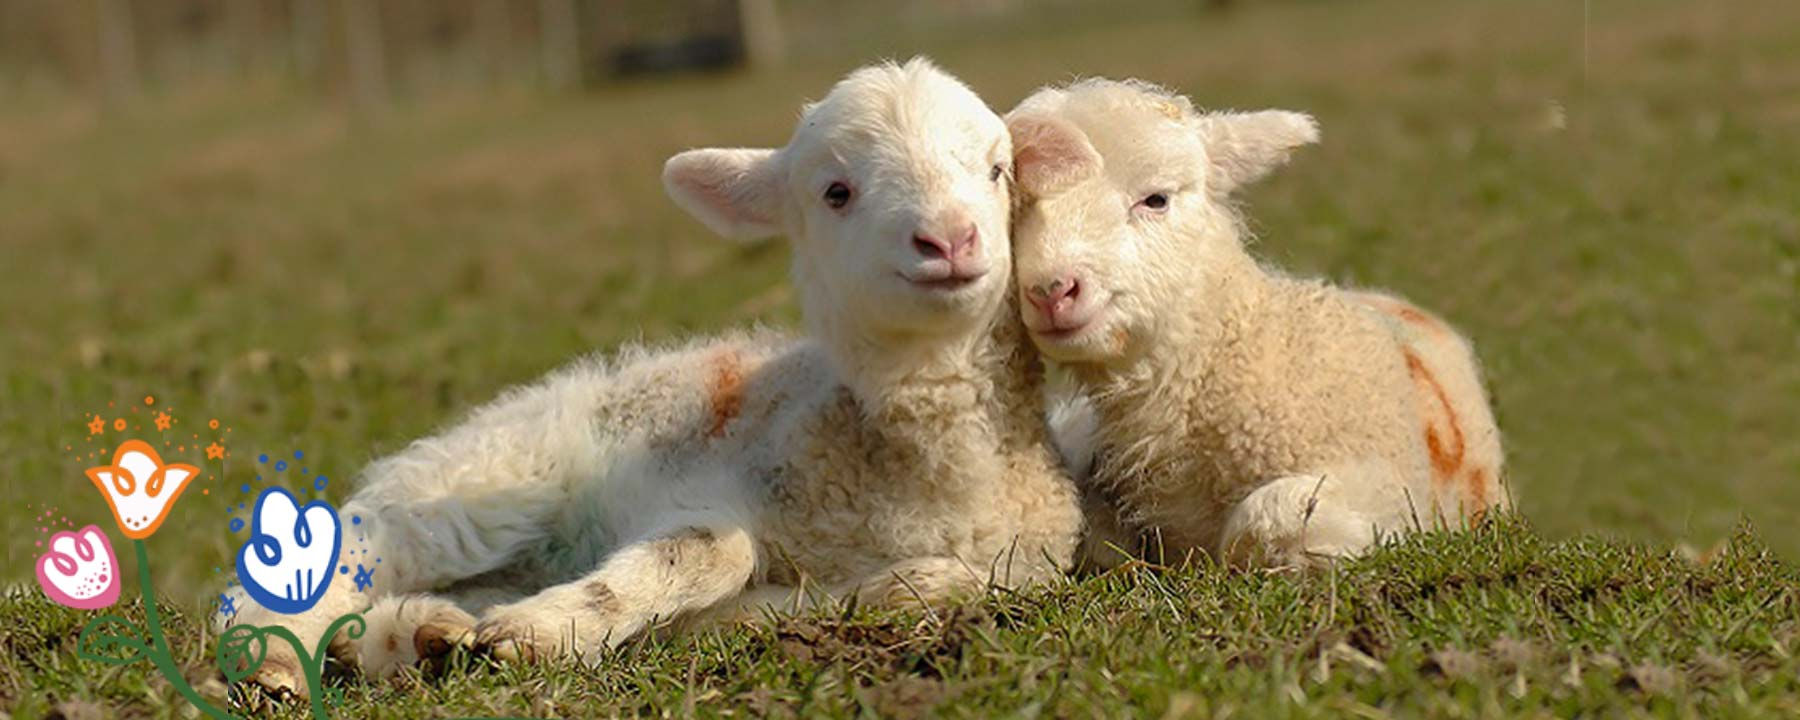 lambing at odds farm park